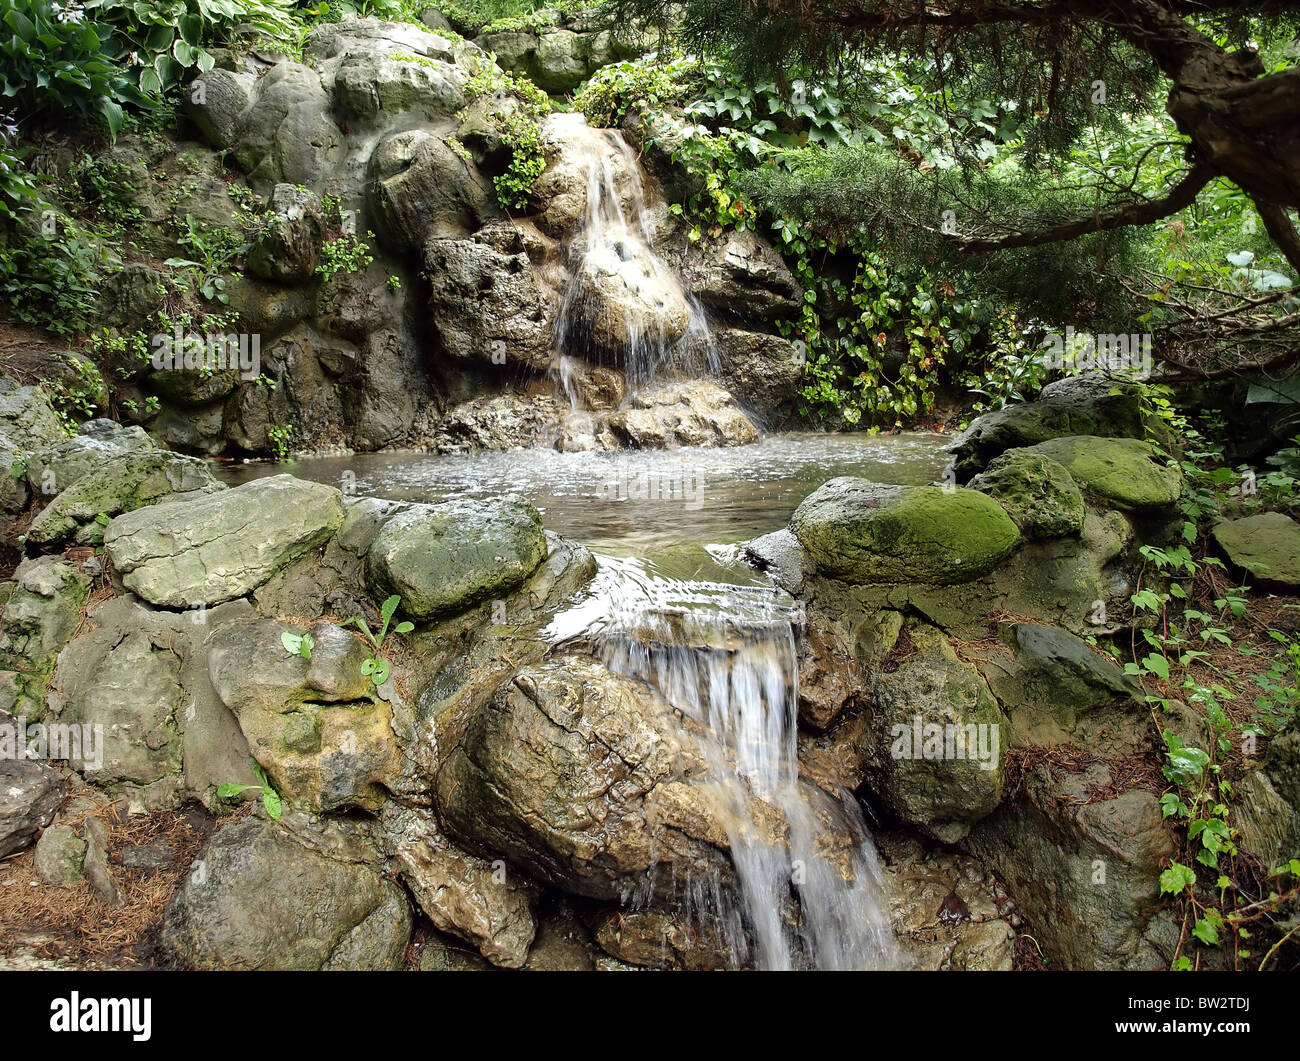 Picture of small waterfall in summer garden - Stock Image